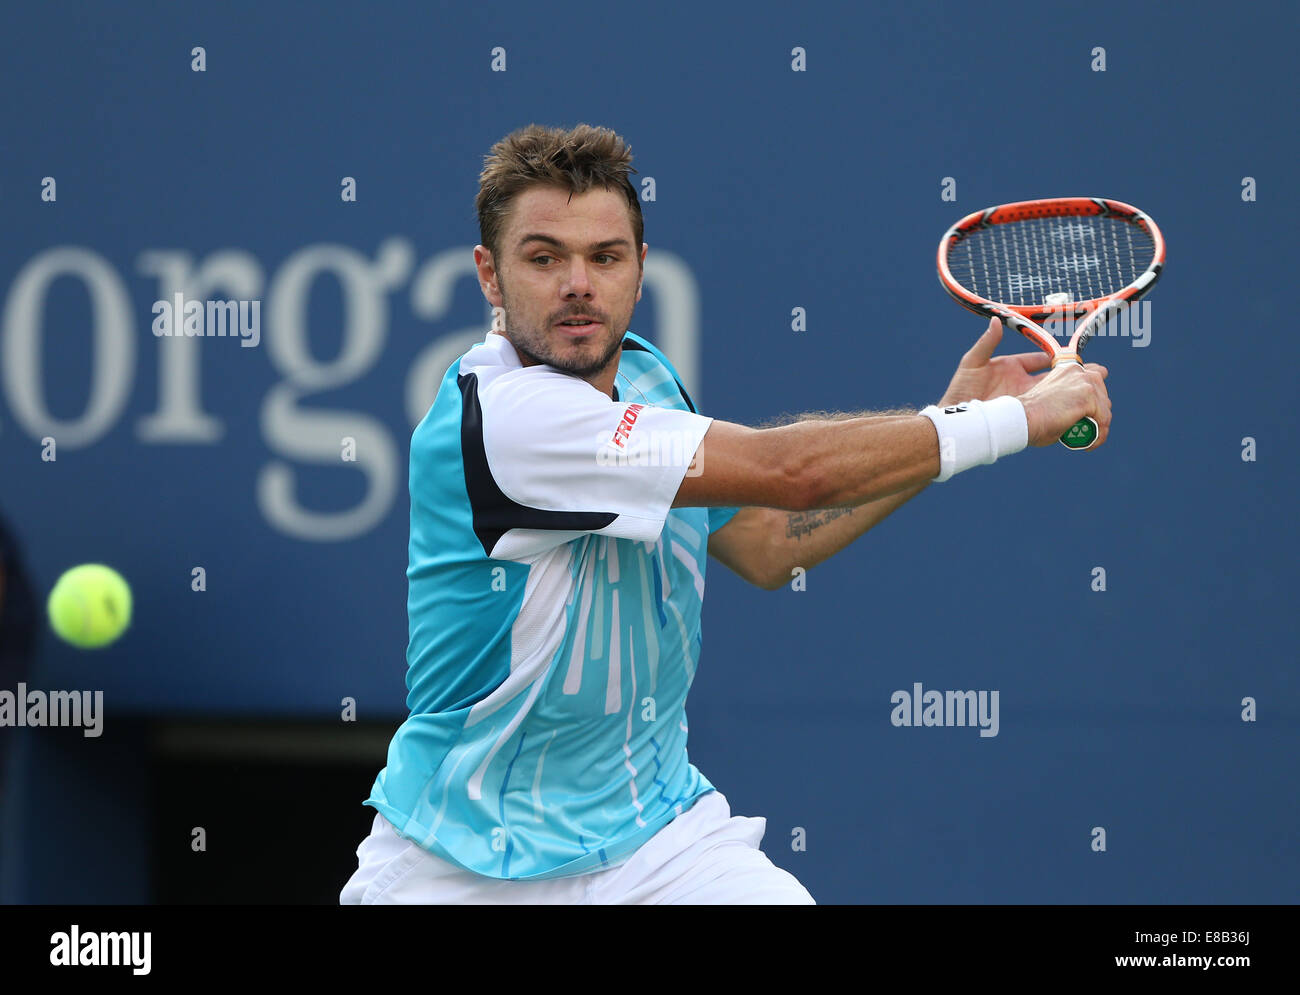 Stan Wawrinka (SUI) in action at the US Open 2014 Championships in New York,USA. - Stock Image